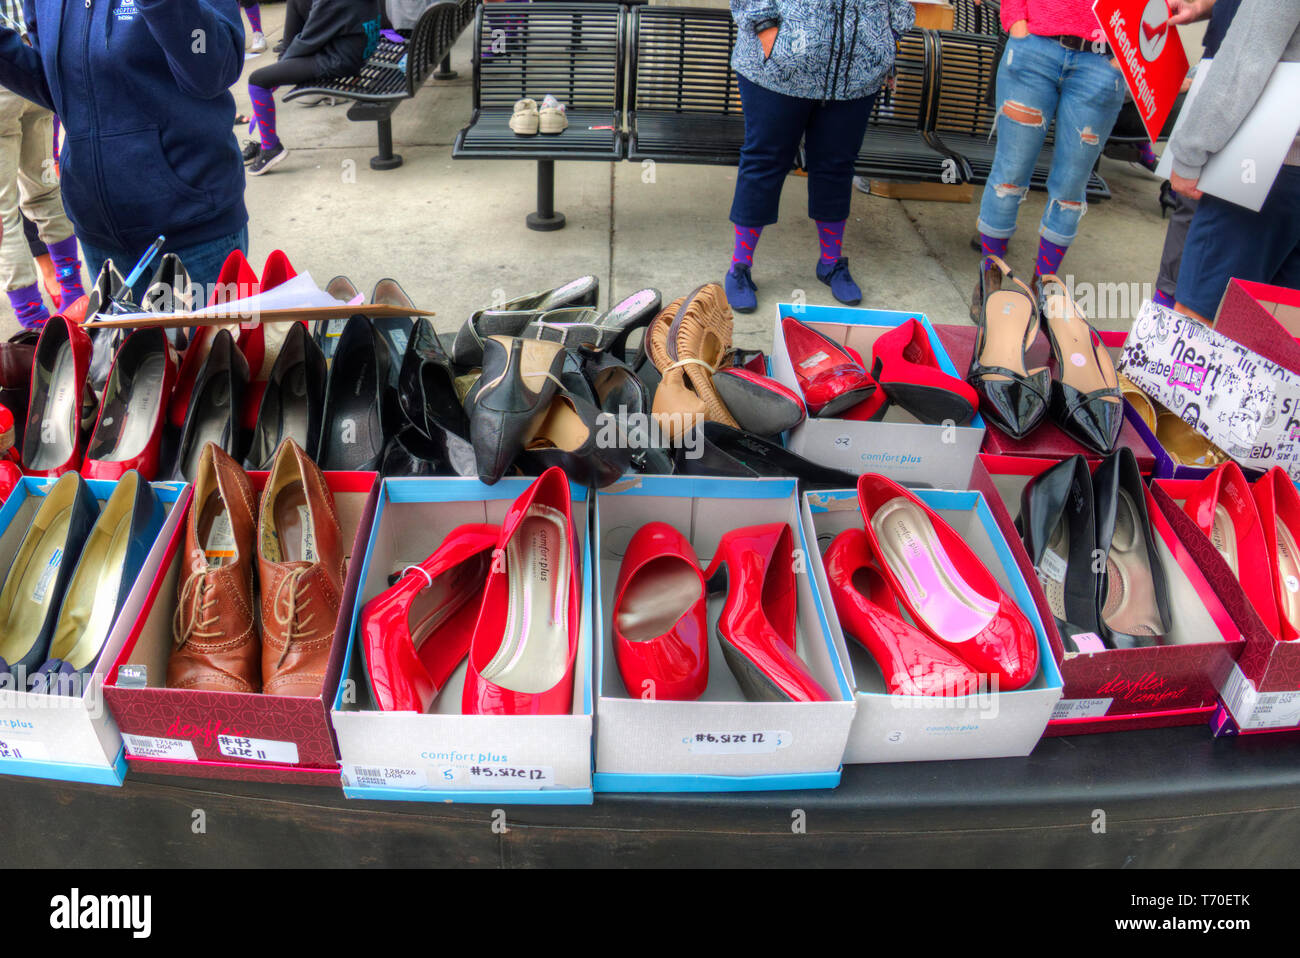 Boxes of ladies high heel shoes to be used in a Walk a Mile in Her Shoes campaign to raise awareness for gender equality. - Stock Image